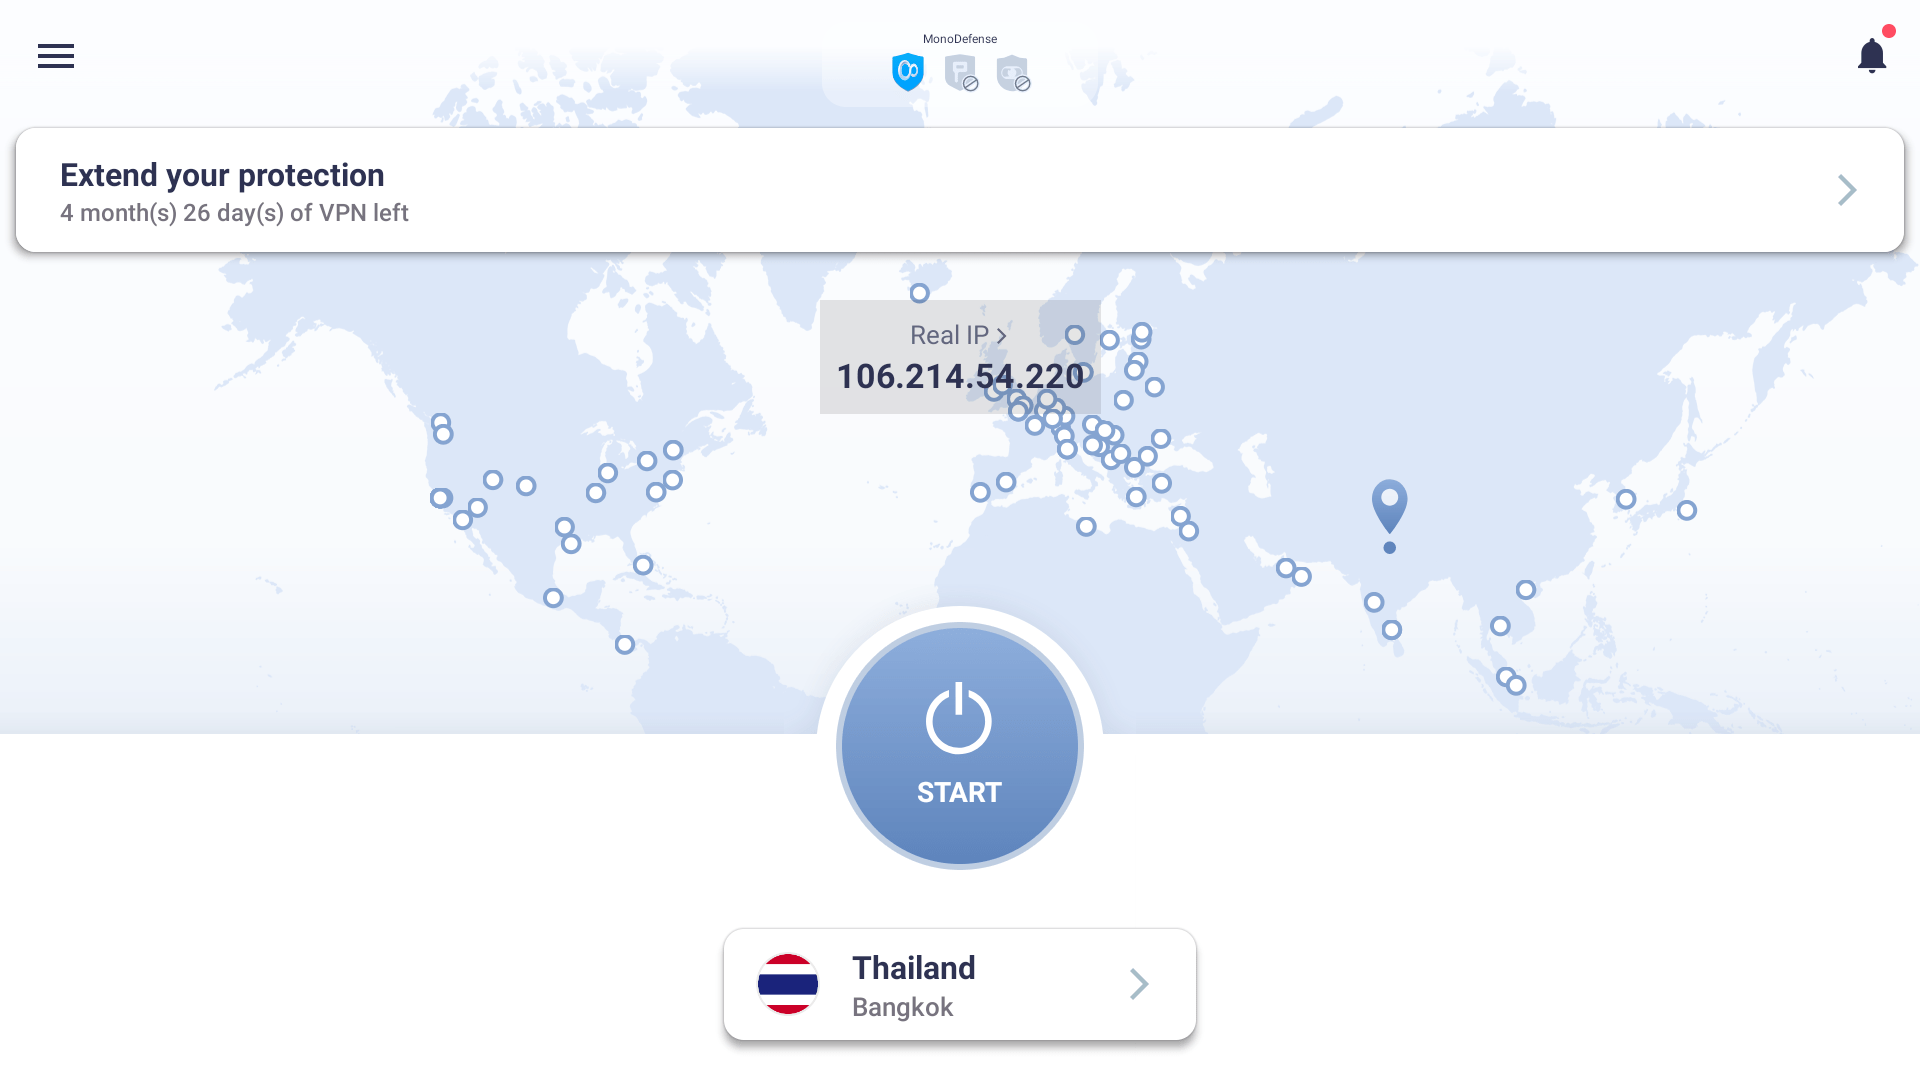 connect to thailand server